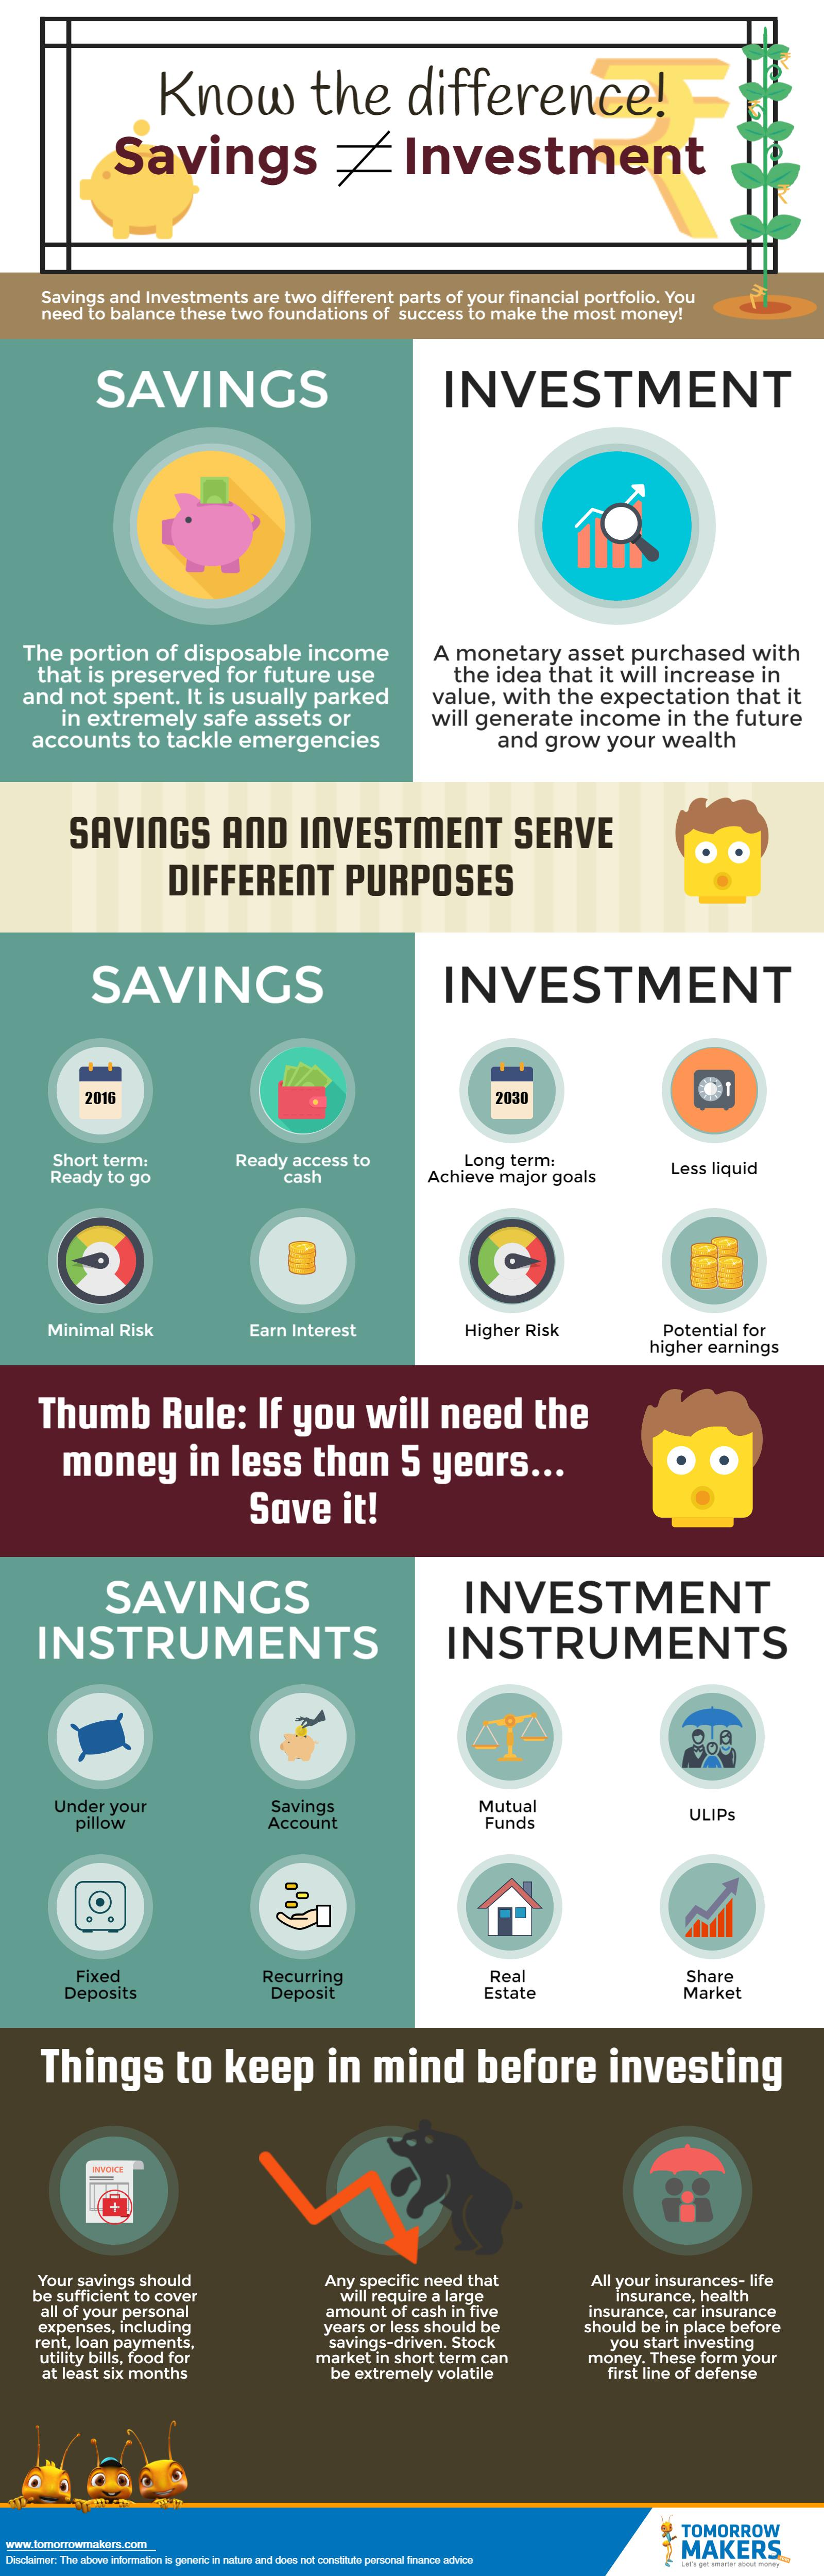 savings-vs-investment-infographic